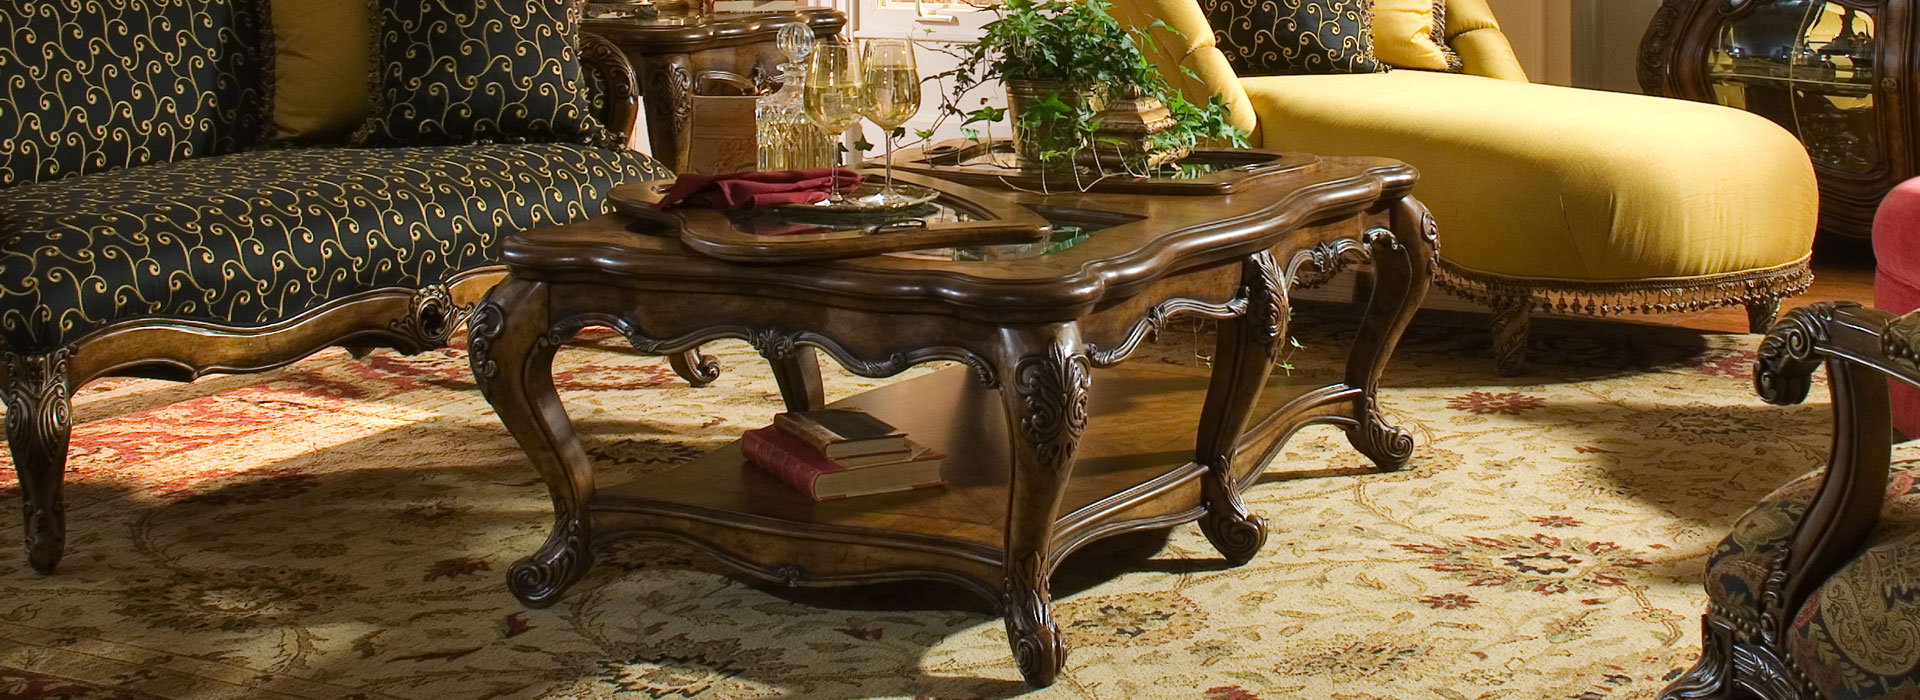 michael amini furniture designs cocktbl header coffee table accent pieces wide selection offered myriad distinctive from around the world includes tables wall art sculptures